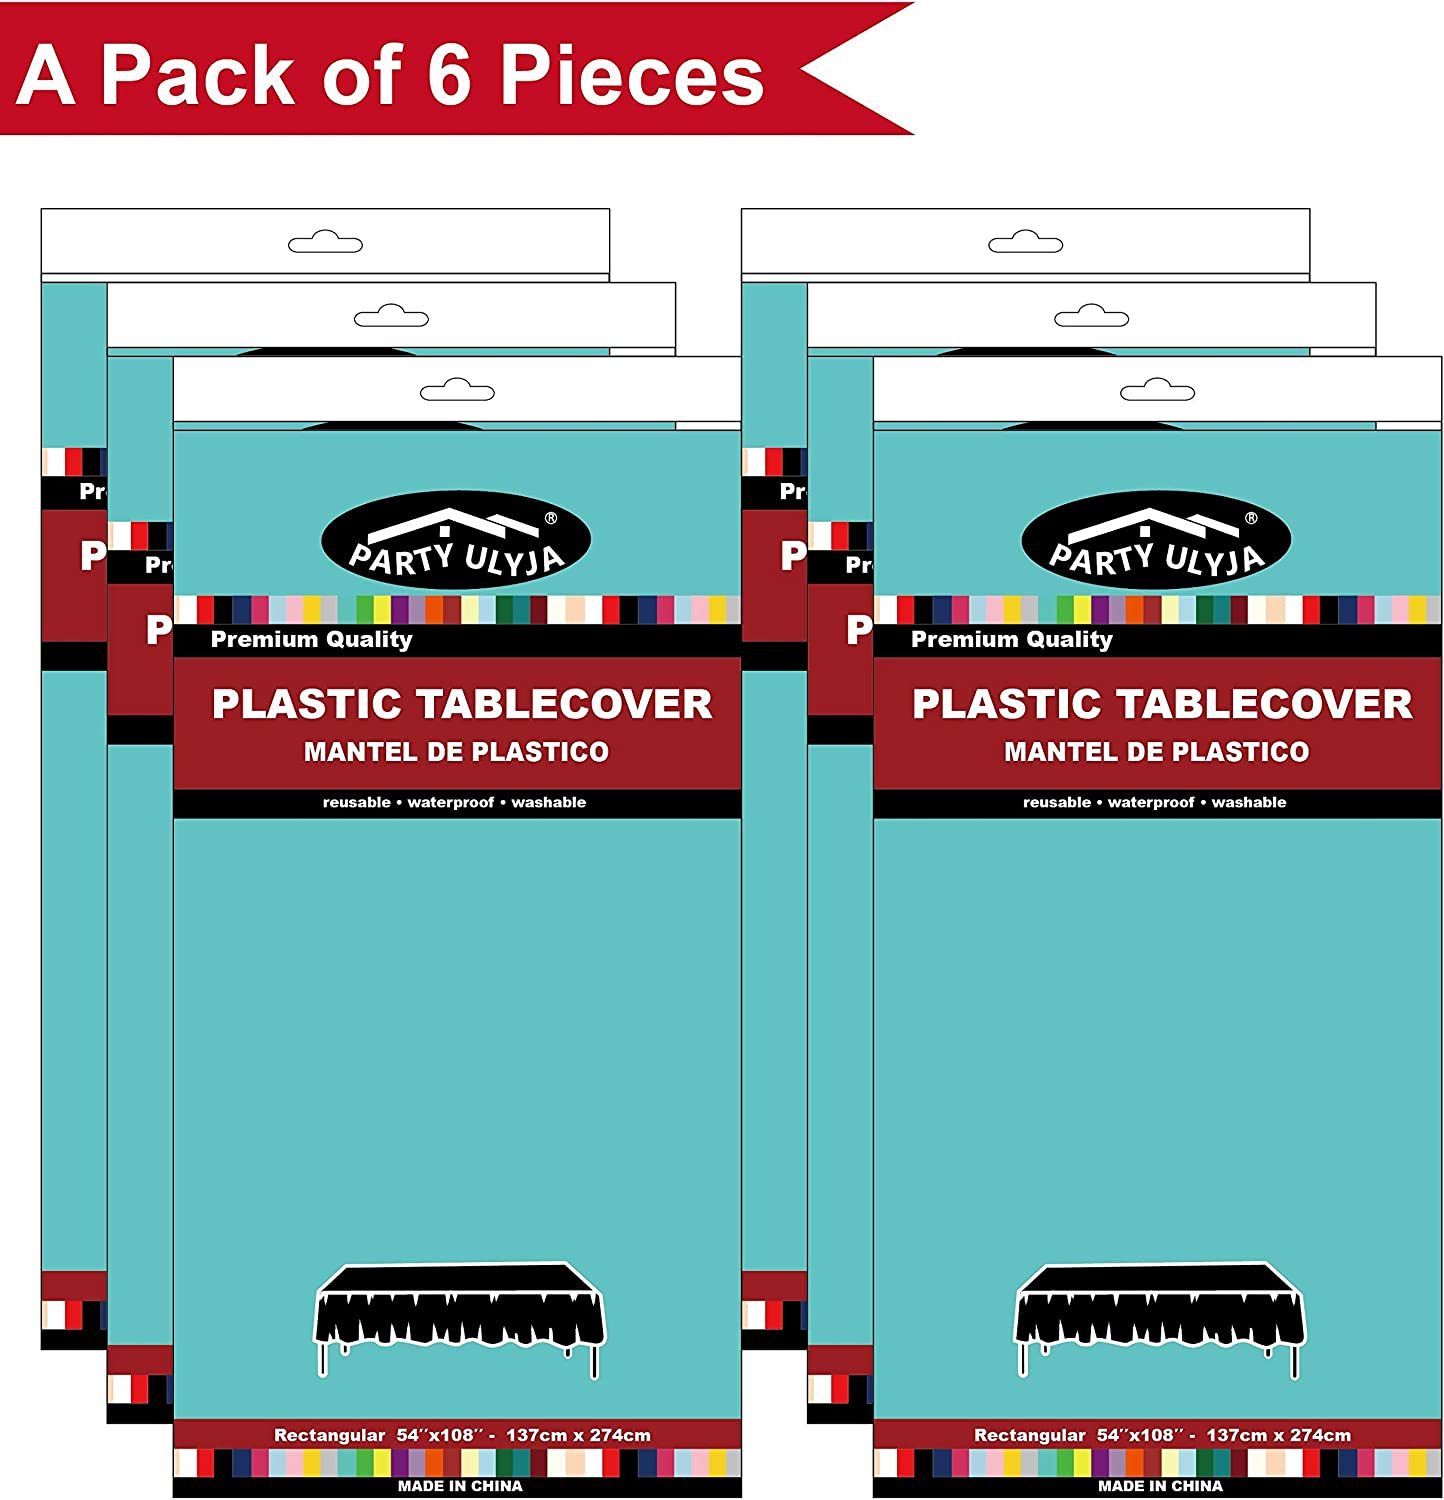 Peva Material Aqua Plastic Tablecloths Disposable Table Covers 6 Pack Premium 54 X 108 Inches Table How to convert feet to inches? tots classroom